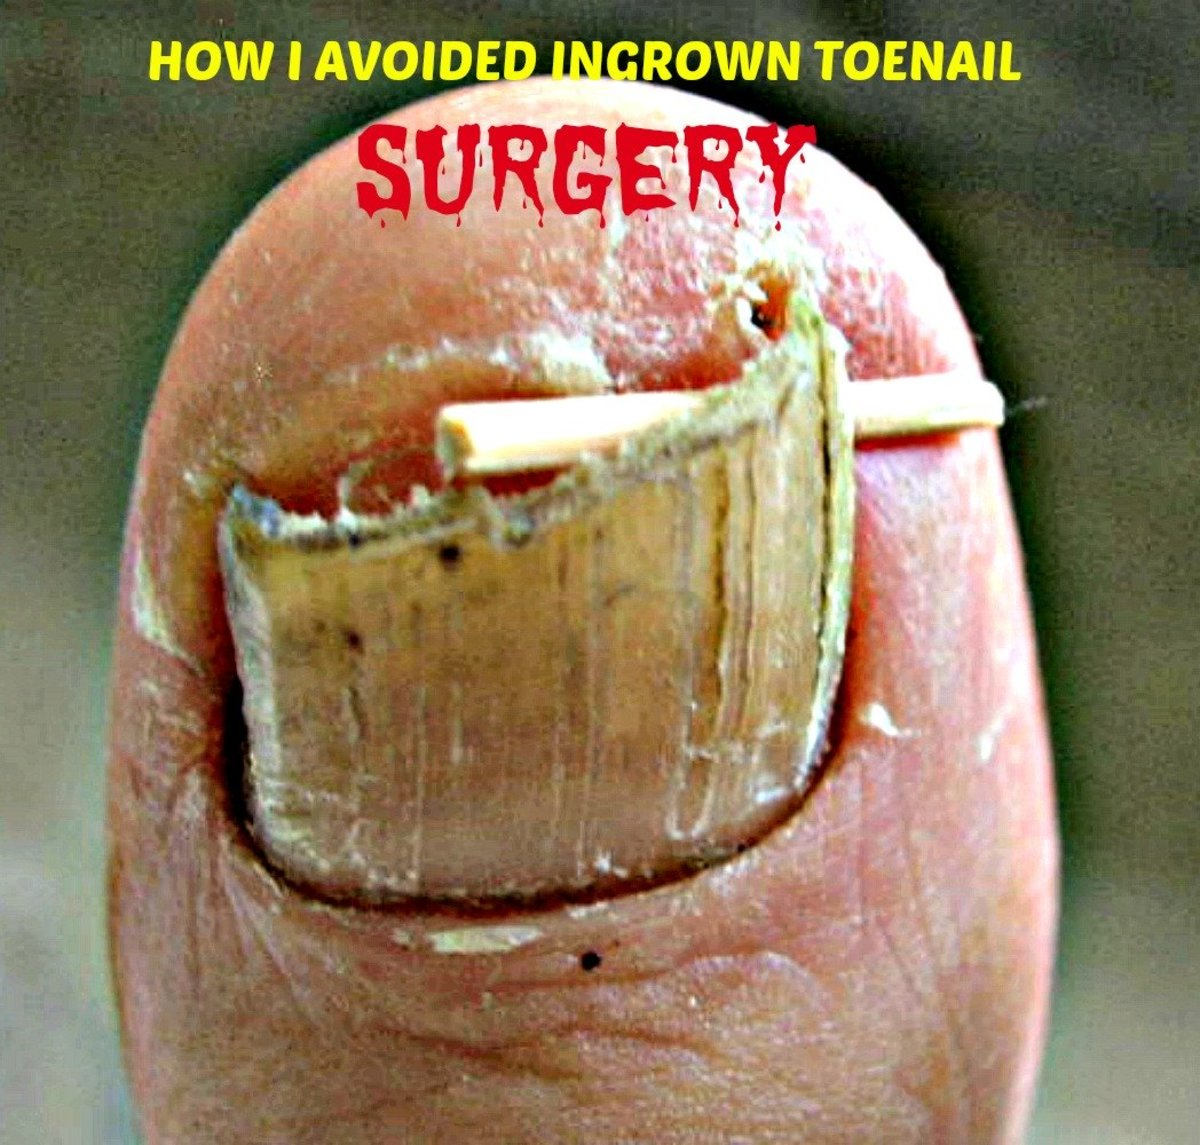 How I Avoided Ingrown Toenail Surgery